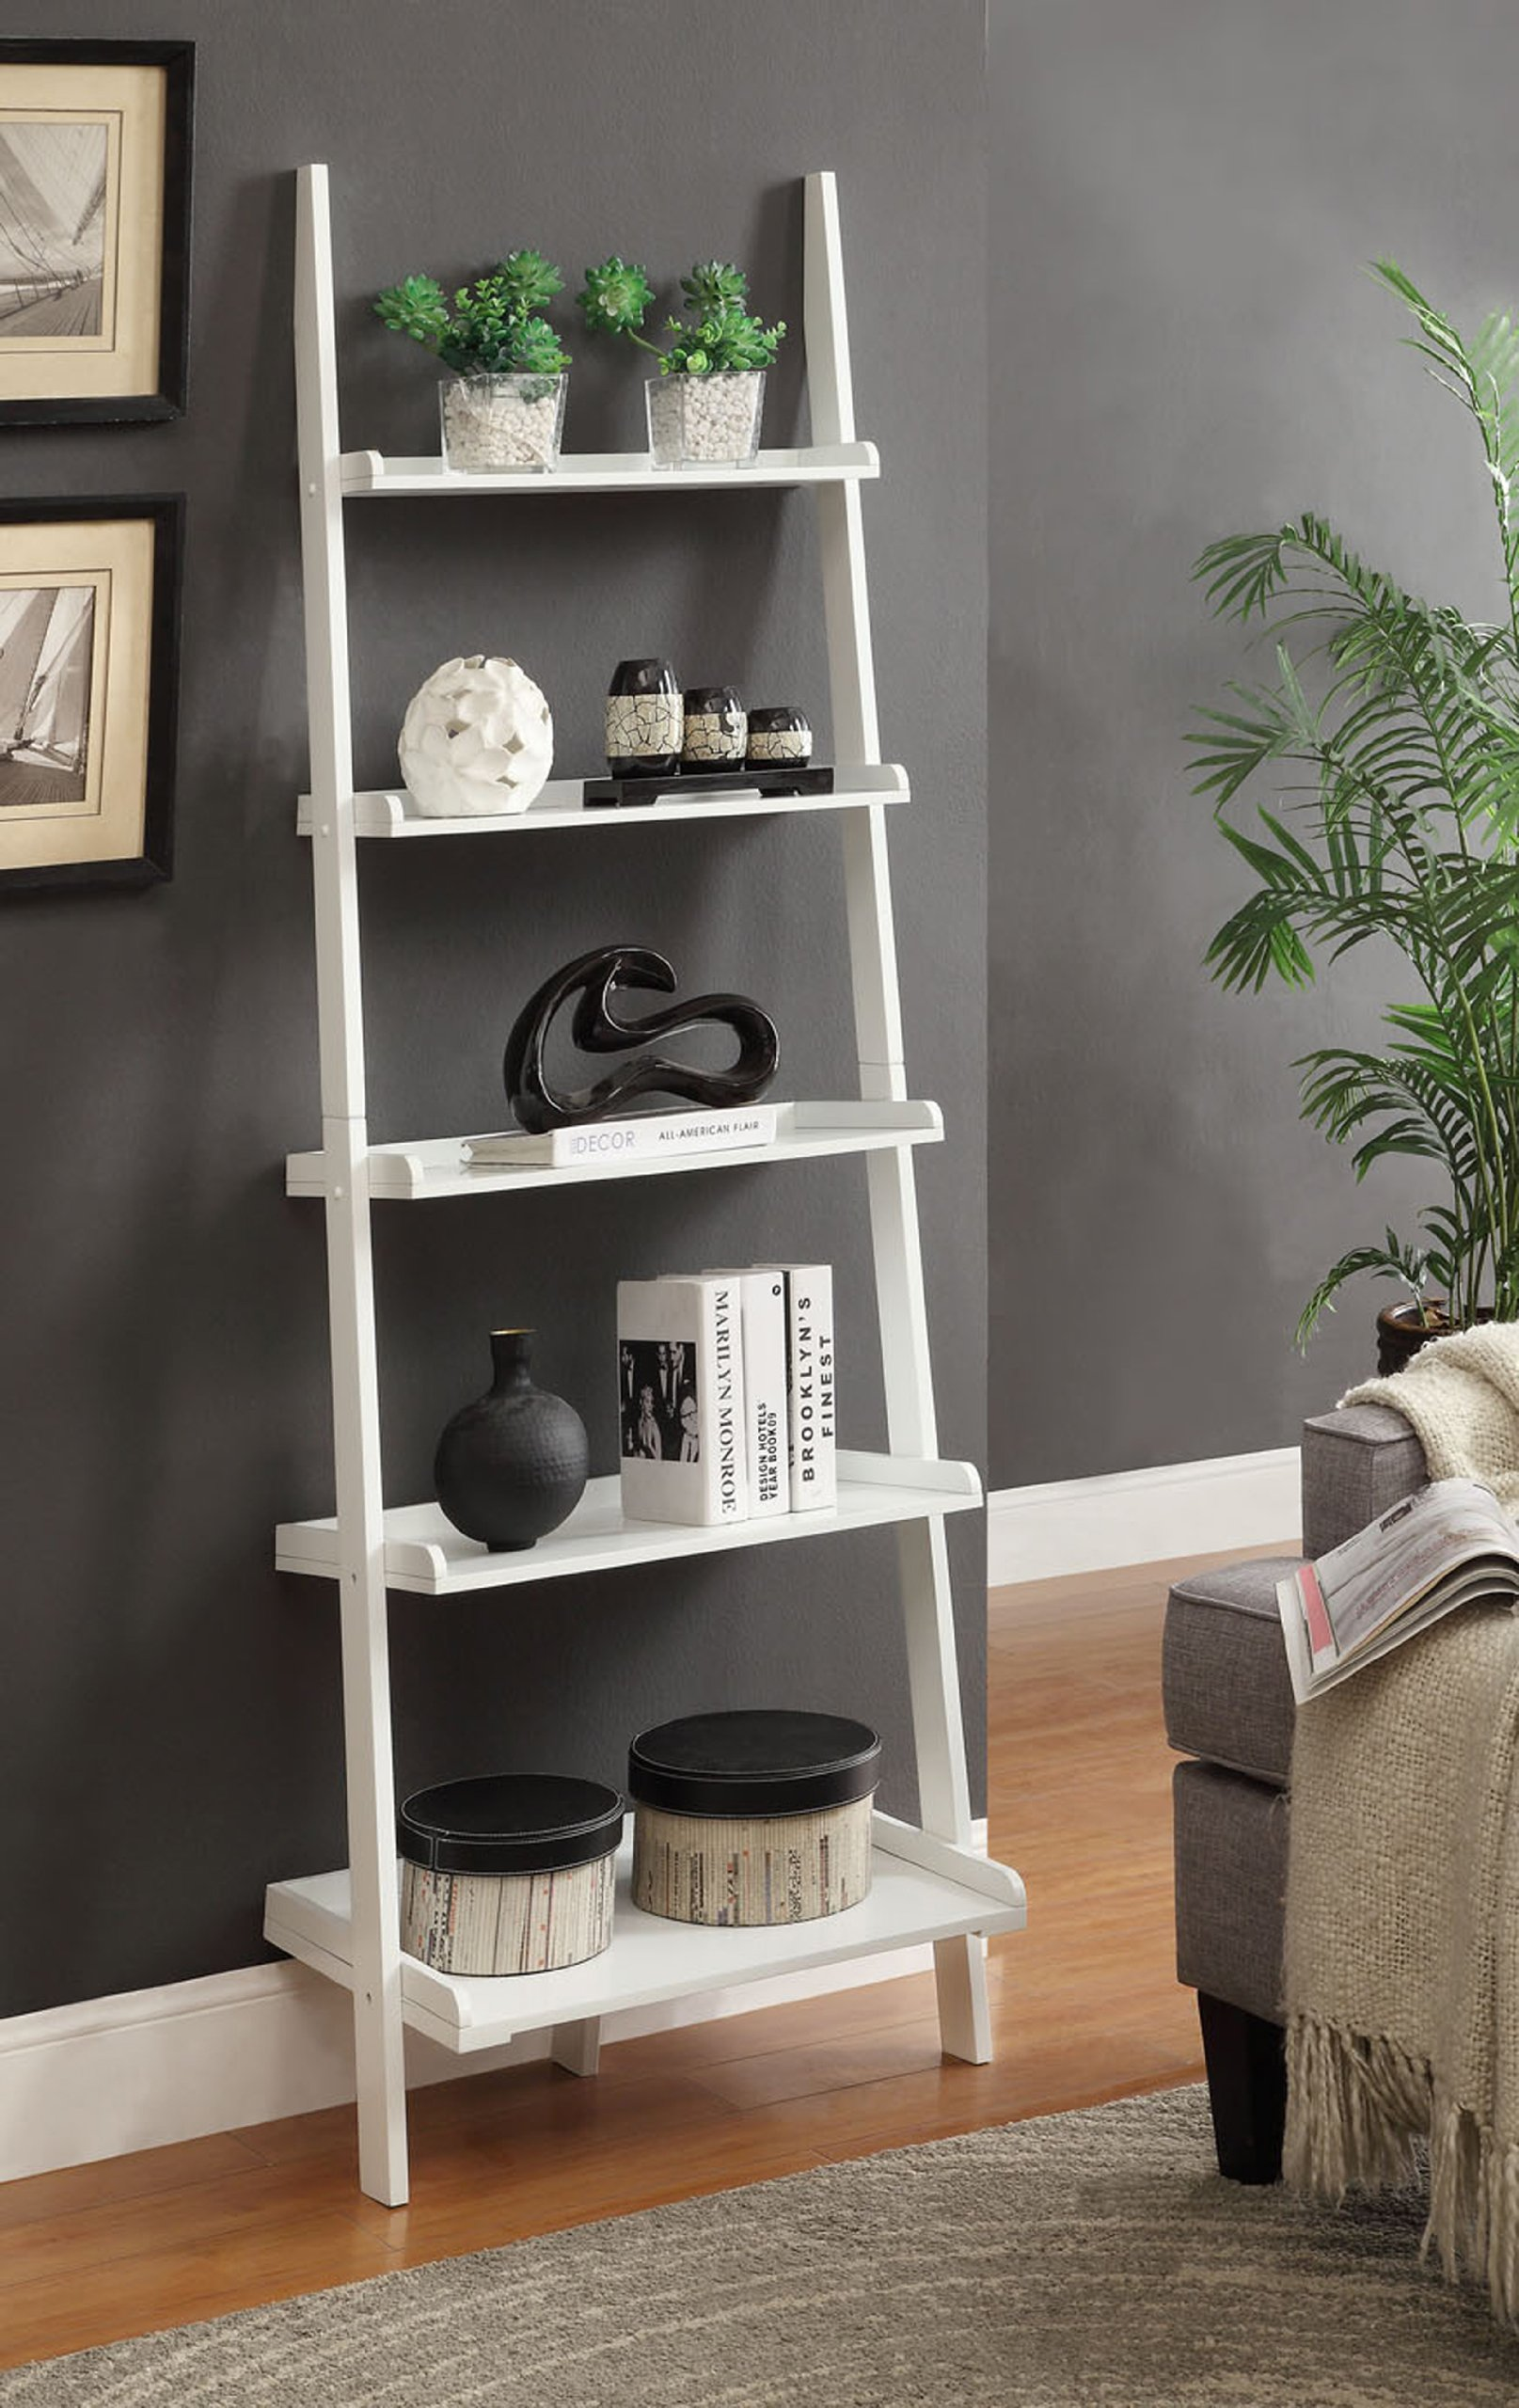 Convenience Concepts French Country Bookshelf Ladder, White by Convenience Concepts (Image #3)